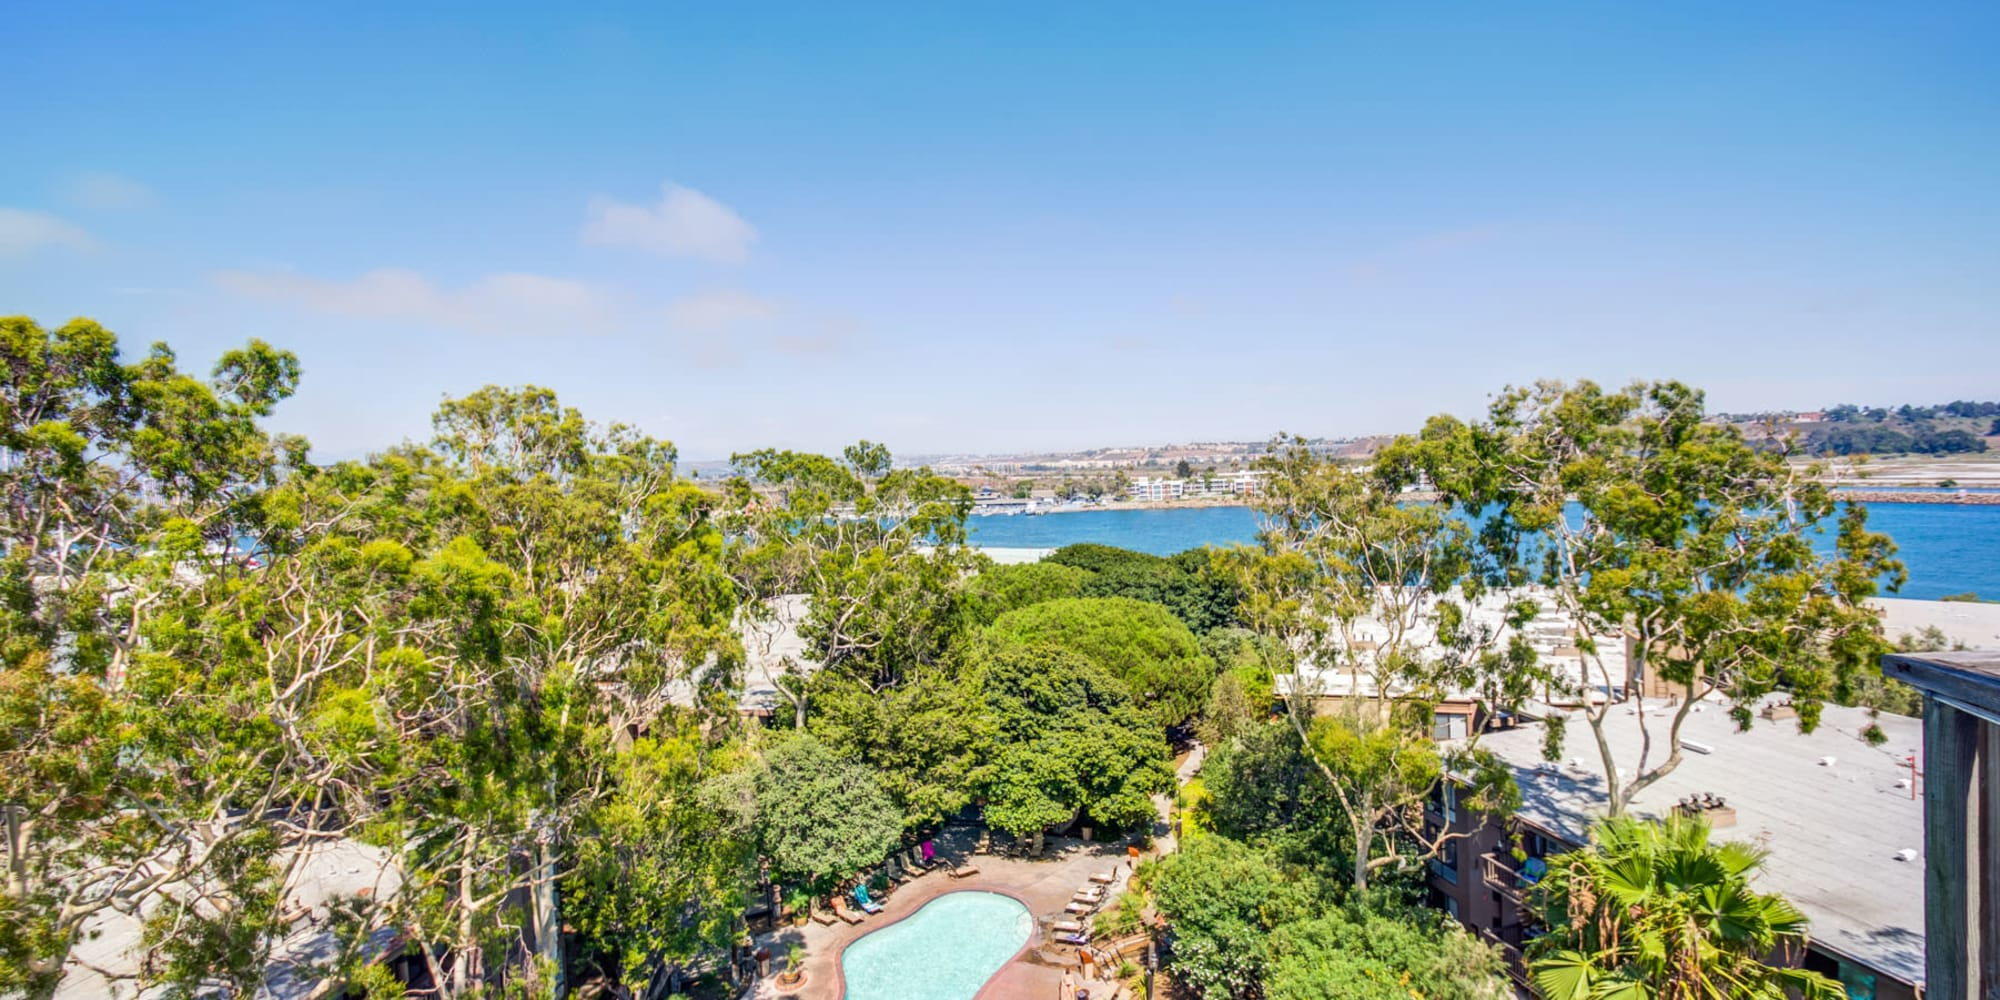 View the virtual tours for Mariners Village in Marina del Rey, California